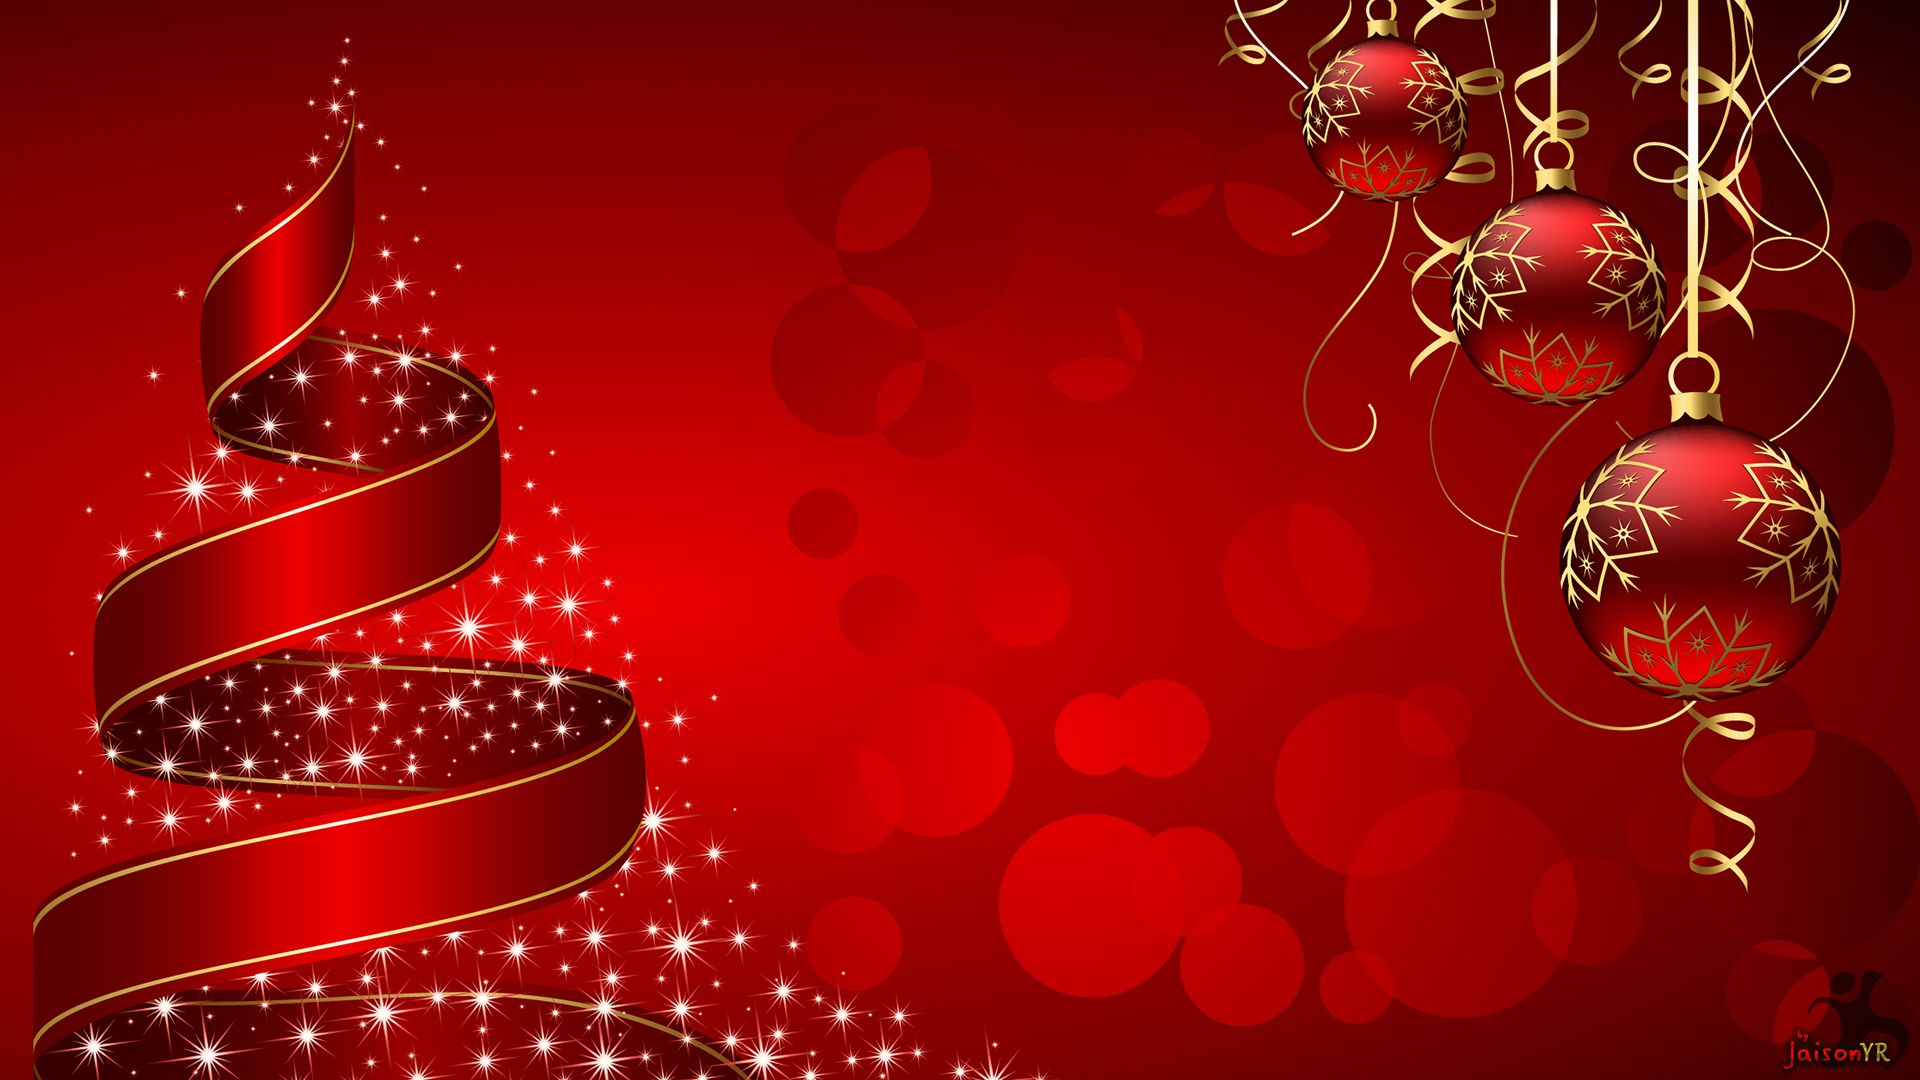 Christmas Background Free Large Images Merry Christmas Wallpaper Christmas Wallpaper Free Free Christmas Wallpaper Downloads